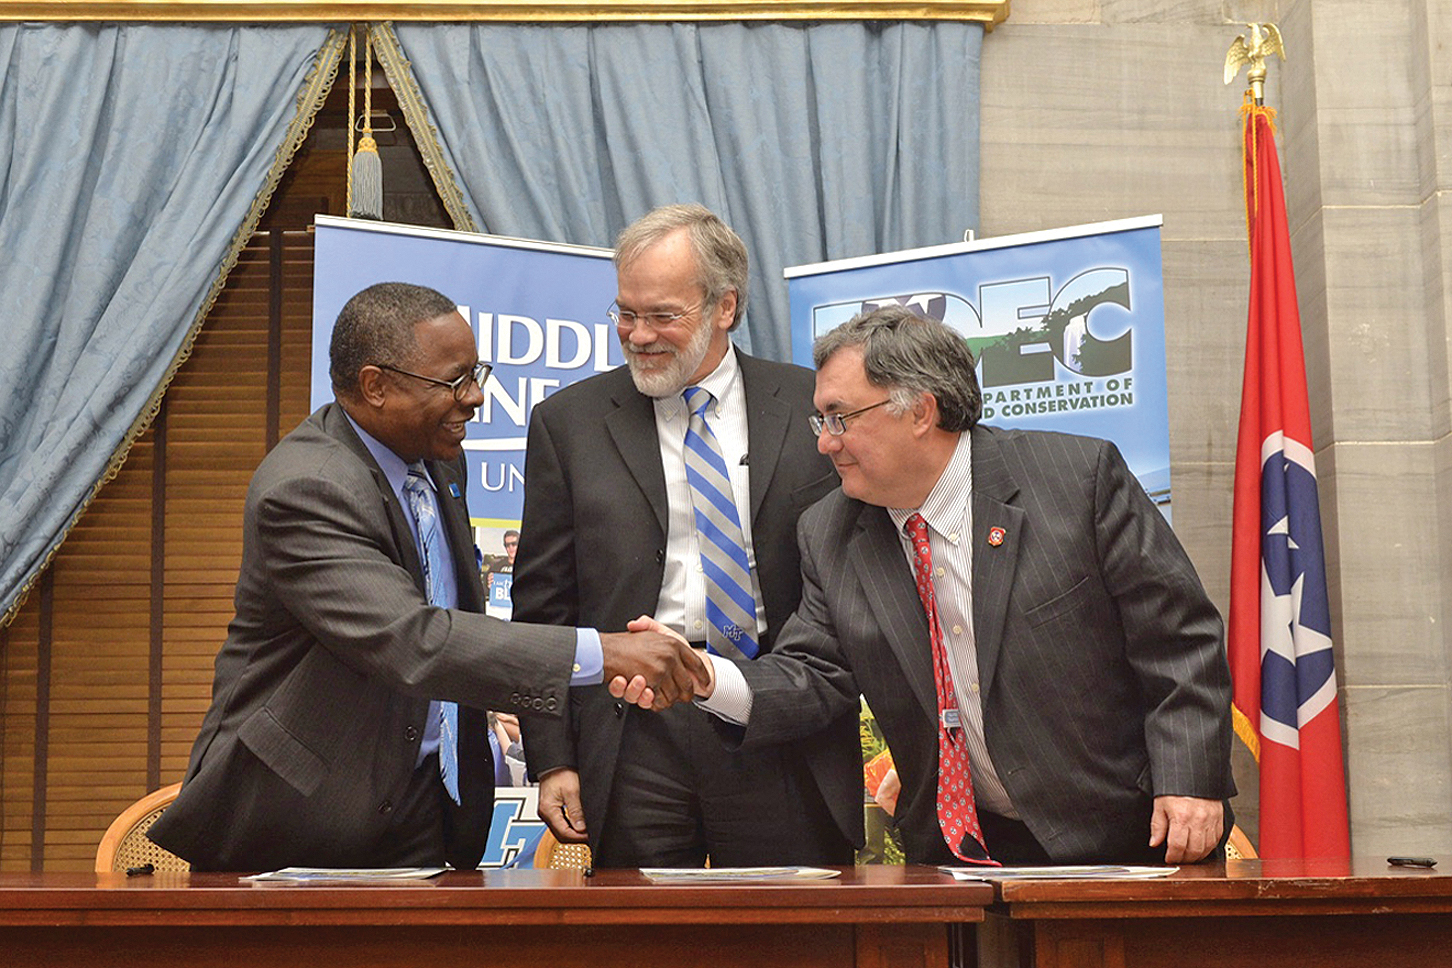 MTSU President Sidney A. McPhee, left, shakes hands with Tennessee Department of Environment and Conservation Commissioner Bob Martineau, right, after signing an agreement Thursday, April 16, at the State Capitol that will expand individual opportunities for earning MTSU course credit and certifications through TDEC's Fleming Training Center in Murfreesboro, online and at other statewide locations. Tennessee Board of Regents Chancellor John Morgan, center, also signed the agreement. (MTSU photo by Andy Heidt)